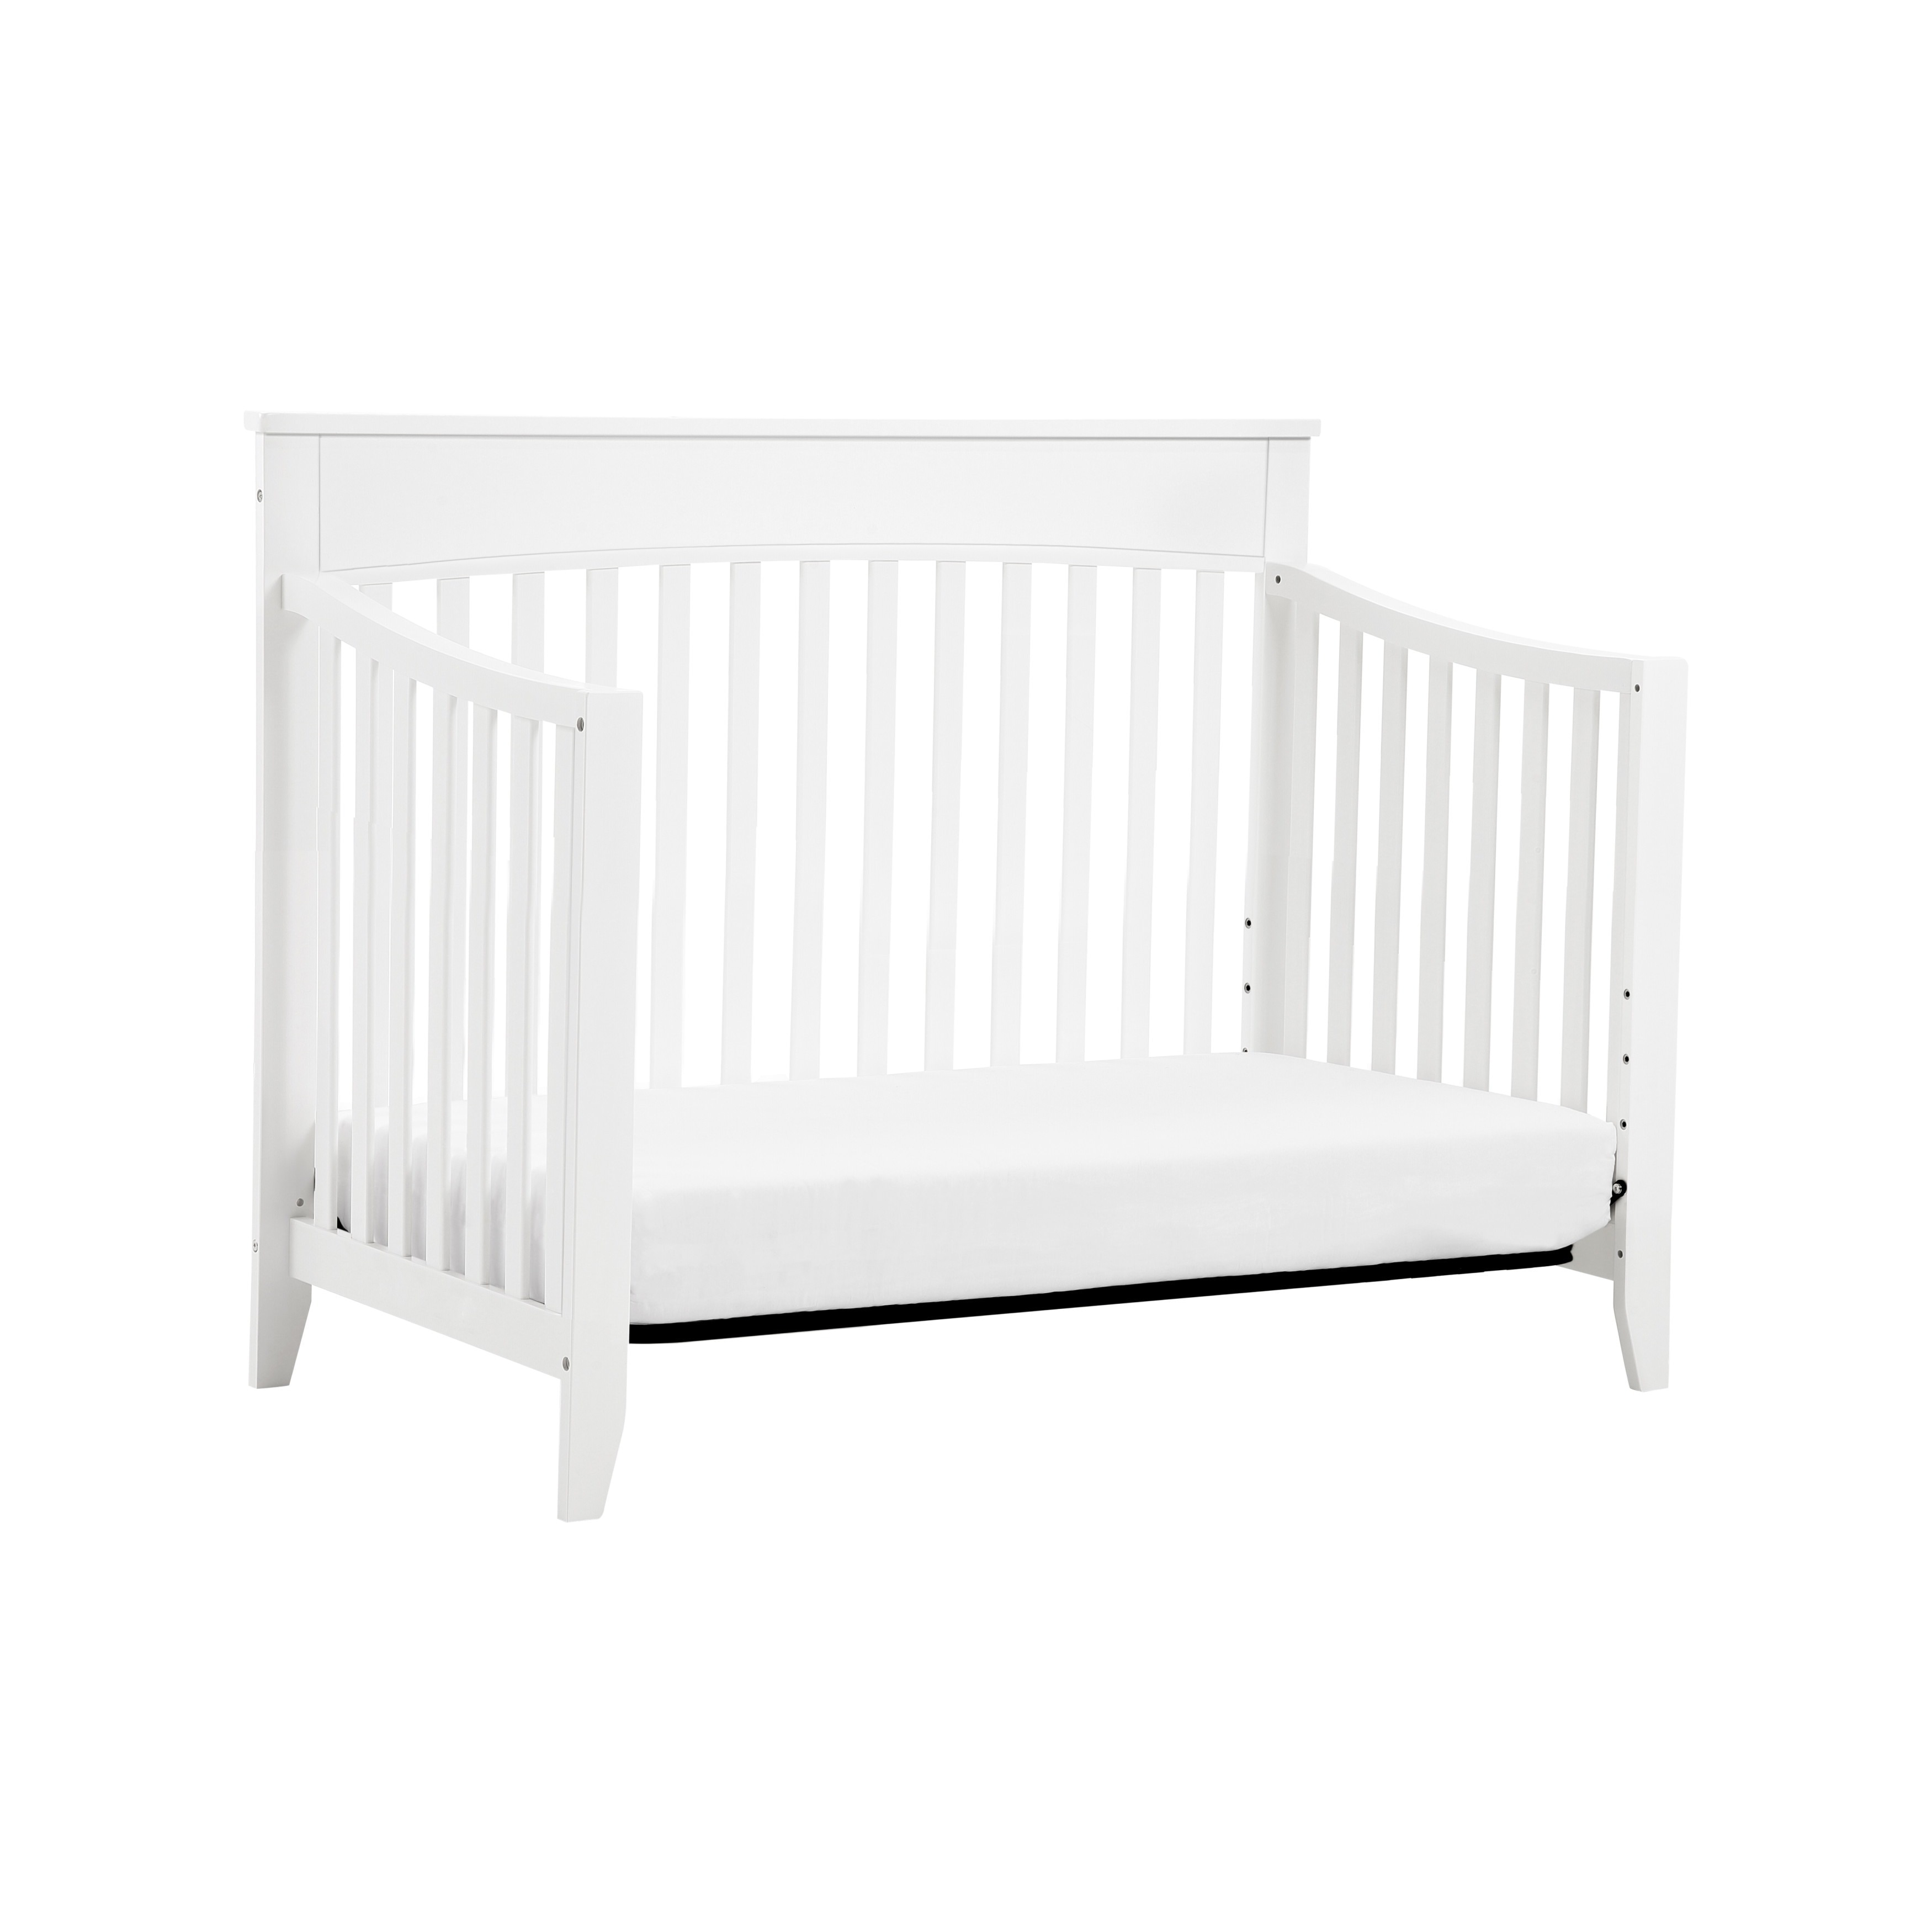 gray nice cozy design bedroom crib convertible for combo davinci decorative with kalani furniture in changer appealing nursery bedding and exciting